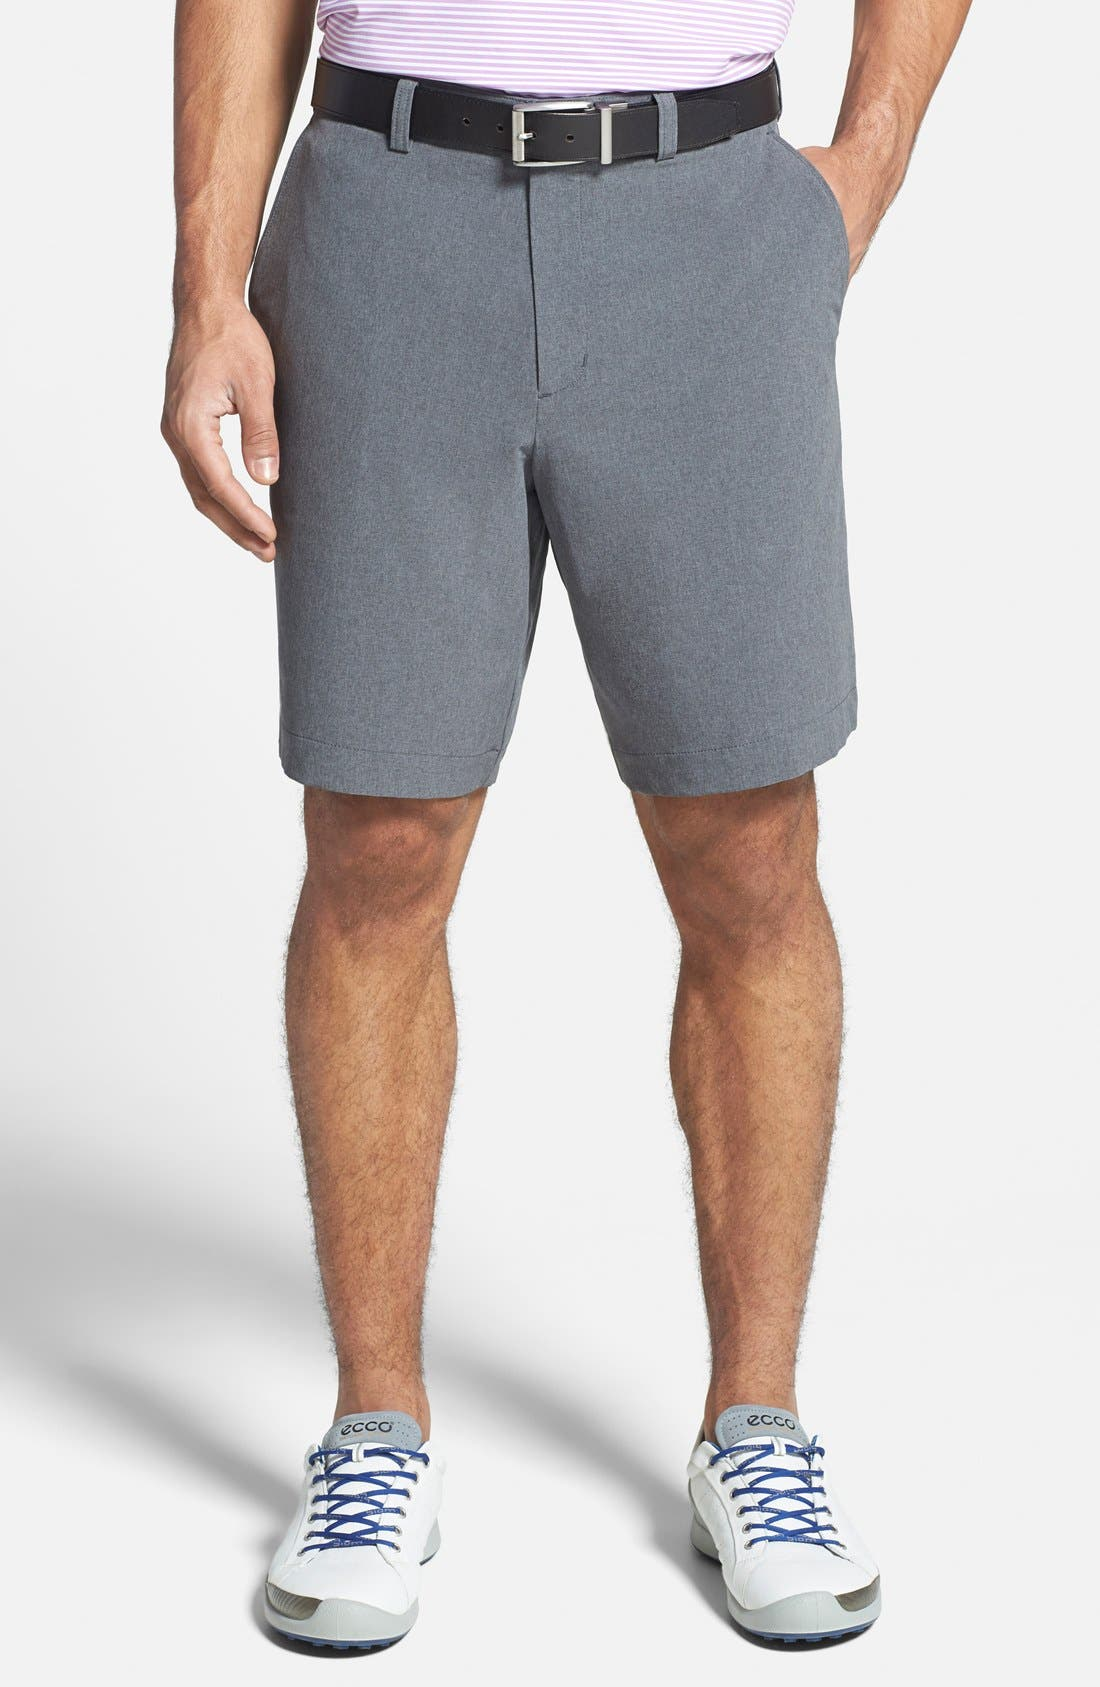 Sturdy shorts for any outdoor activity are crafted from DryTec fabric that wicks away moisture for daylong dryness and comfort. Style Name: Cutter & Buck \\\'Bainbridge\\\' Drytec Shorts. Style Number: 890636. Available in stores.